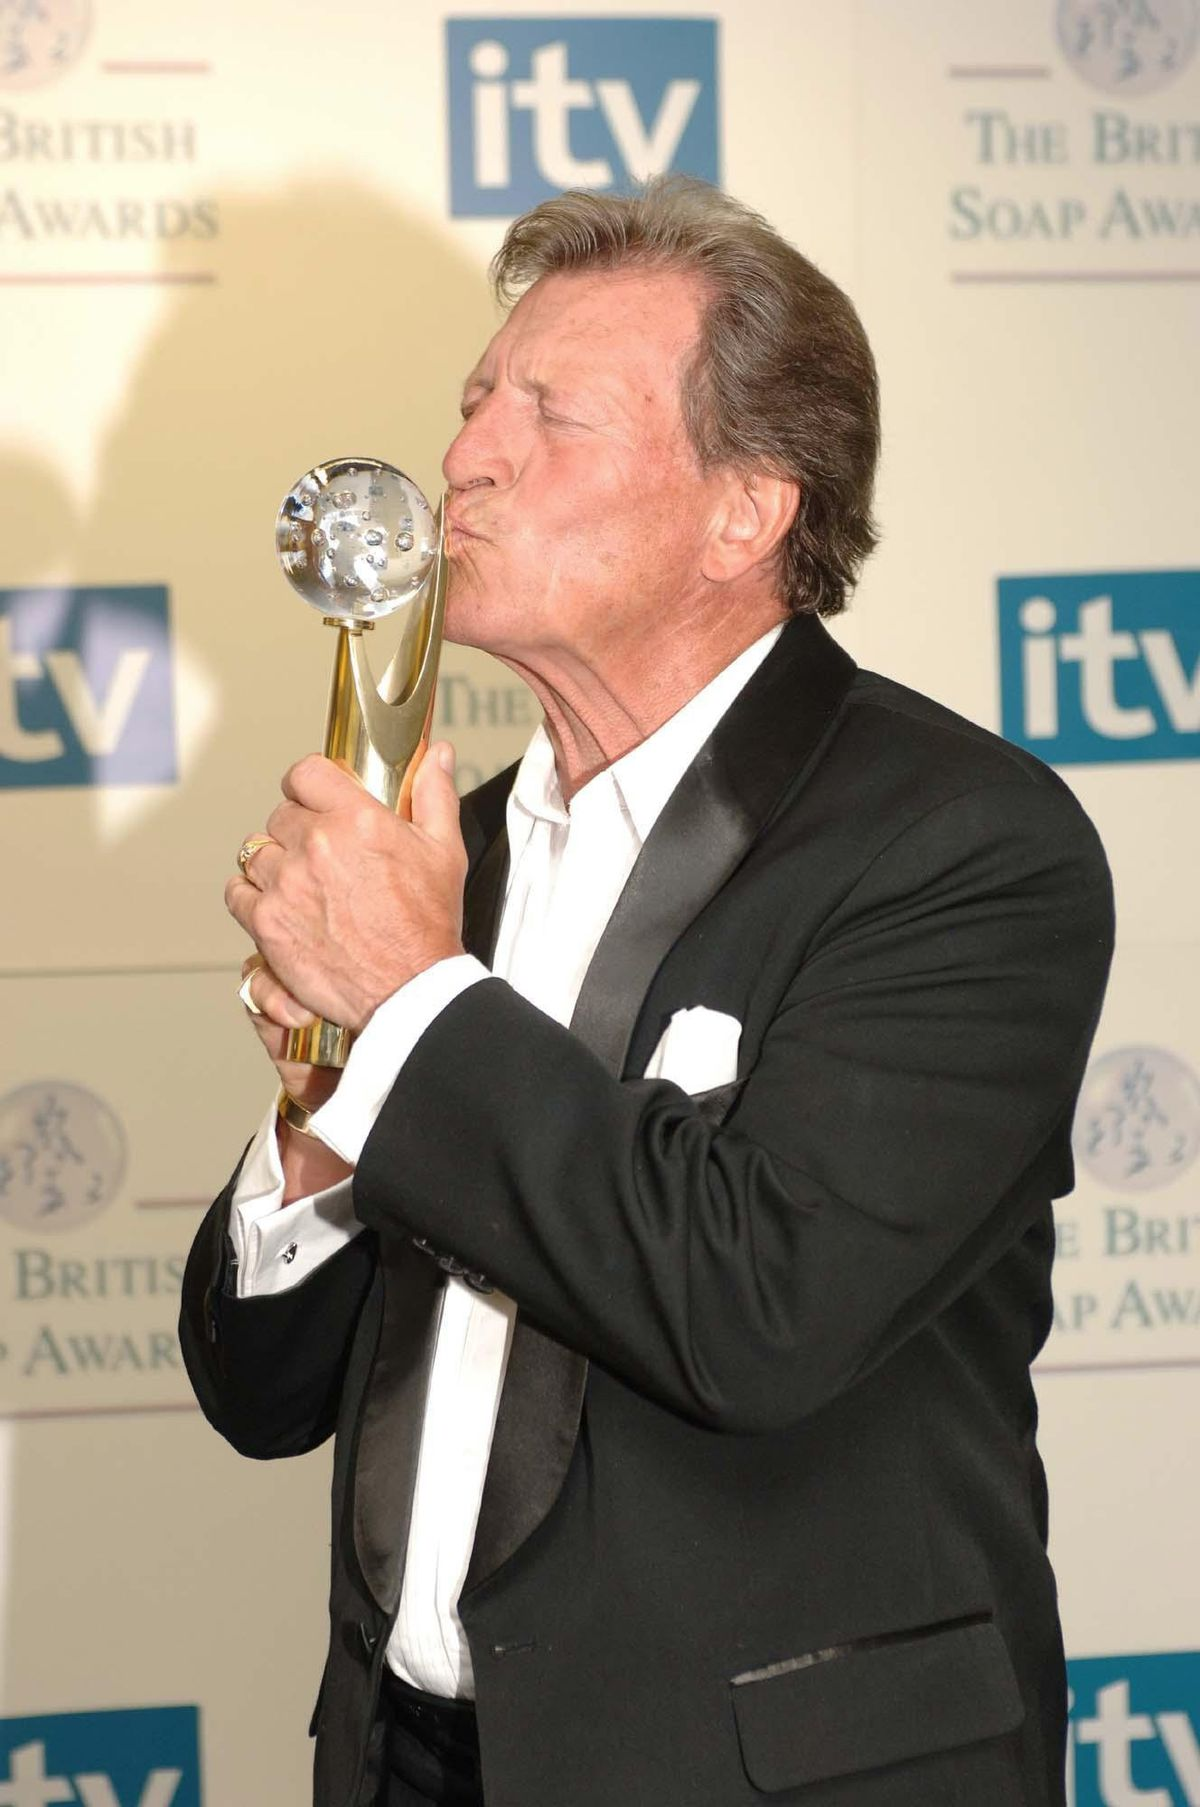 Johnny Briggs with his Lifetime Achievement award at the British Soap Awards, in 2006. Photo: Fiona Hanson/PA Wire.